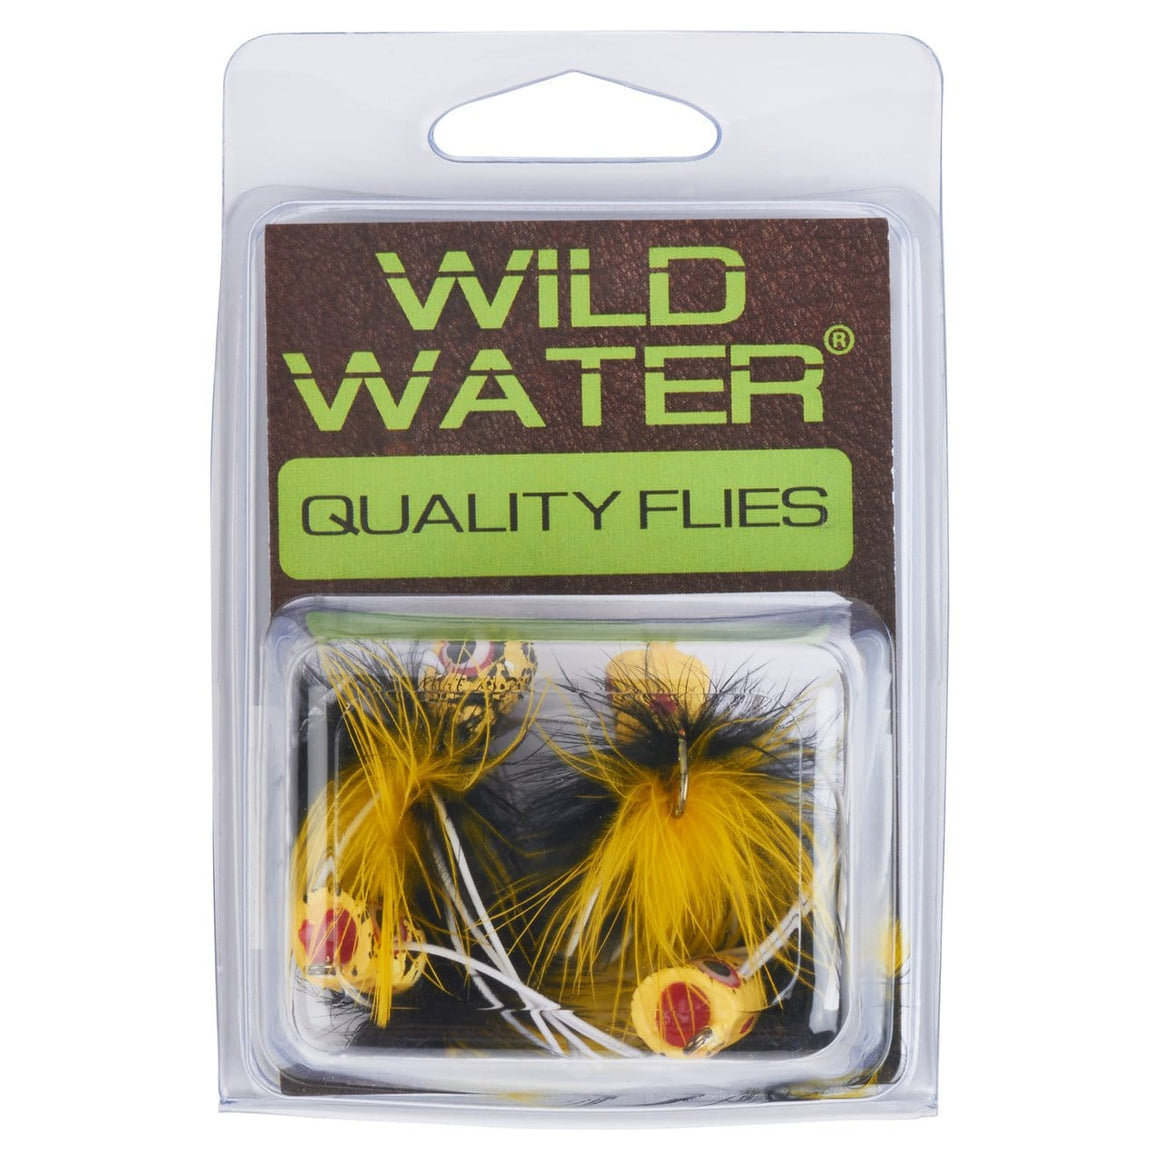 Wild Water Black and Yellow Little Fatty by Pultz Poppers, Size 6, Qty. 4 - Wild Water Fly Fishing